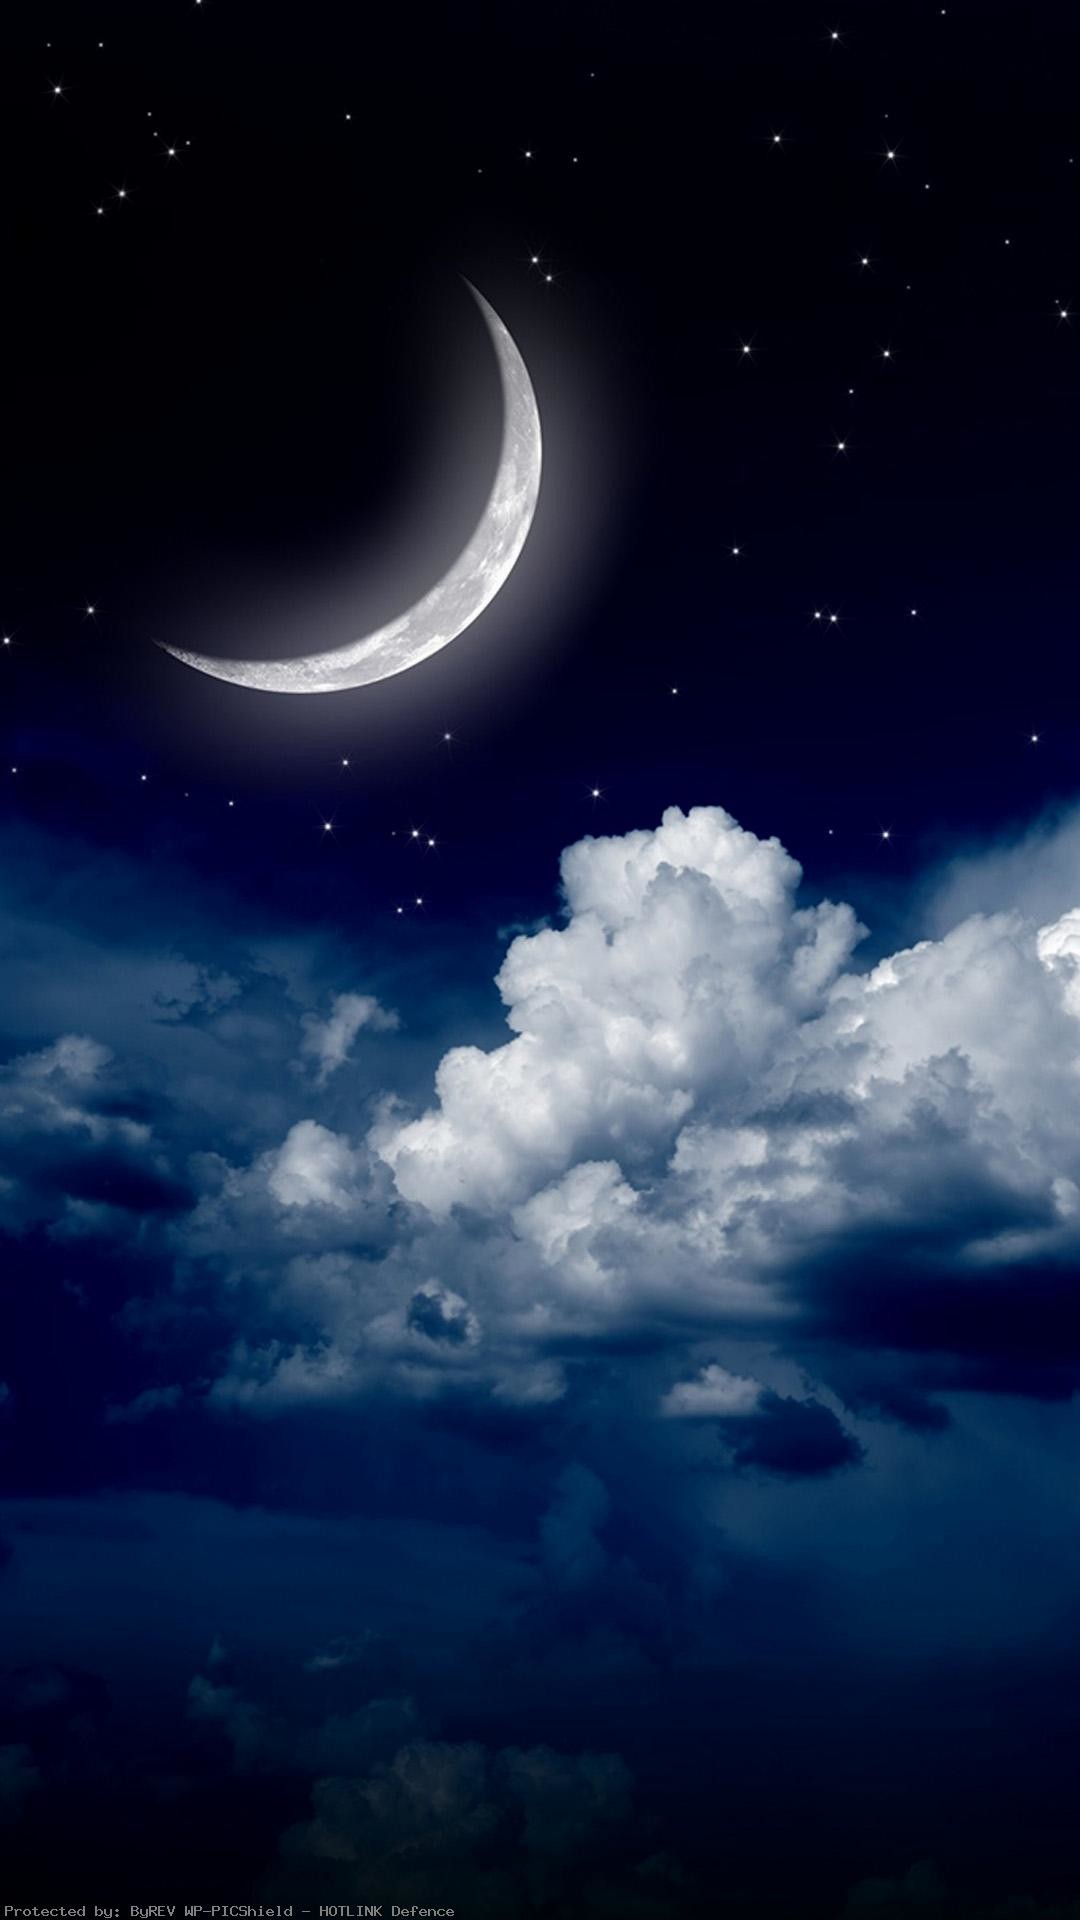 1080x1920 Sky-clouds-moon-iPhone-of-night-stars-view-